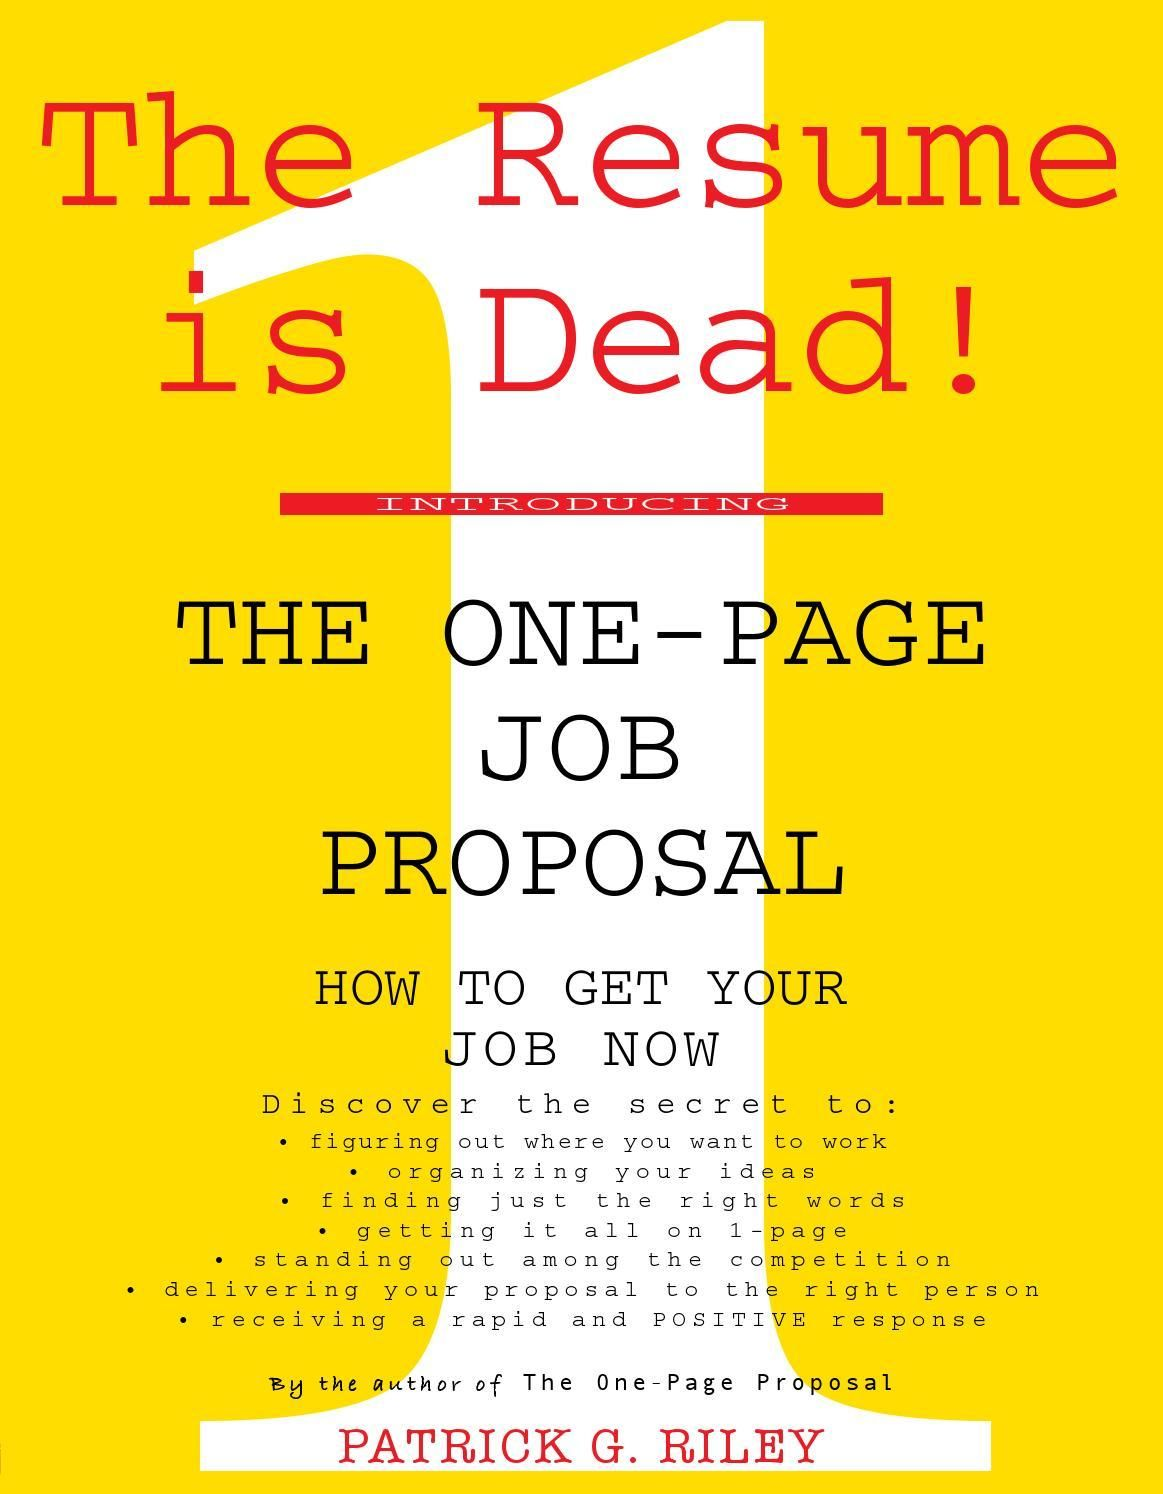 The One Page Job Proposal With Images First Page Proposal Job